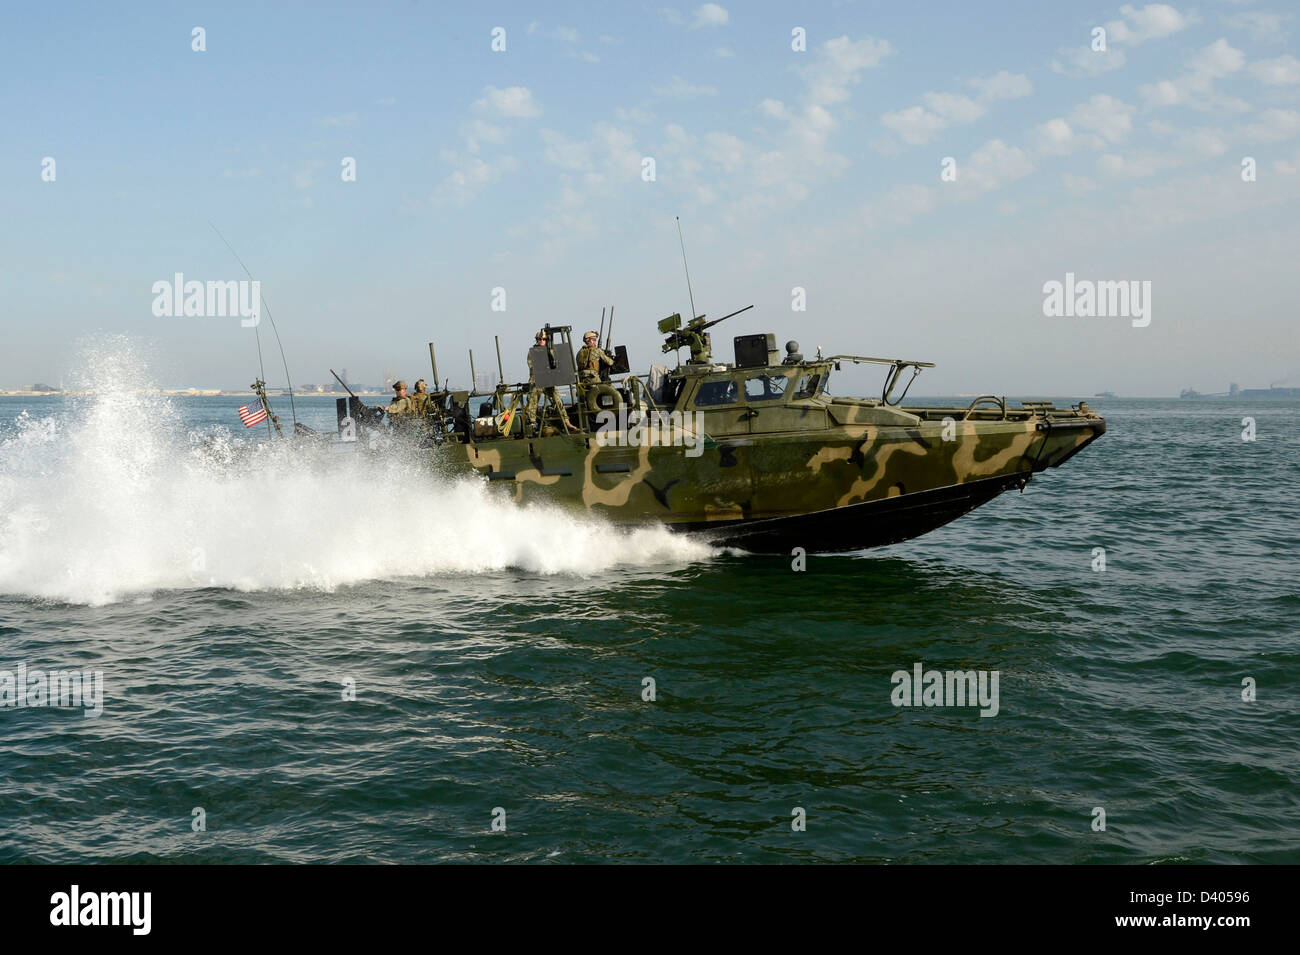 US Navy SEALS conduct patrol operations February 23, 2013 in the port of Bahrain. - Stock Image